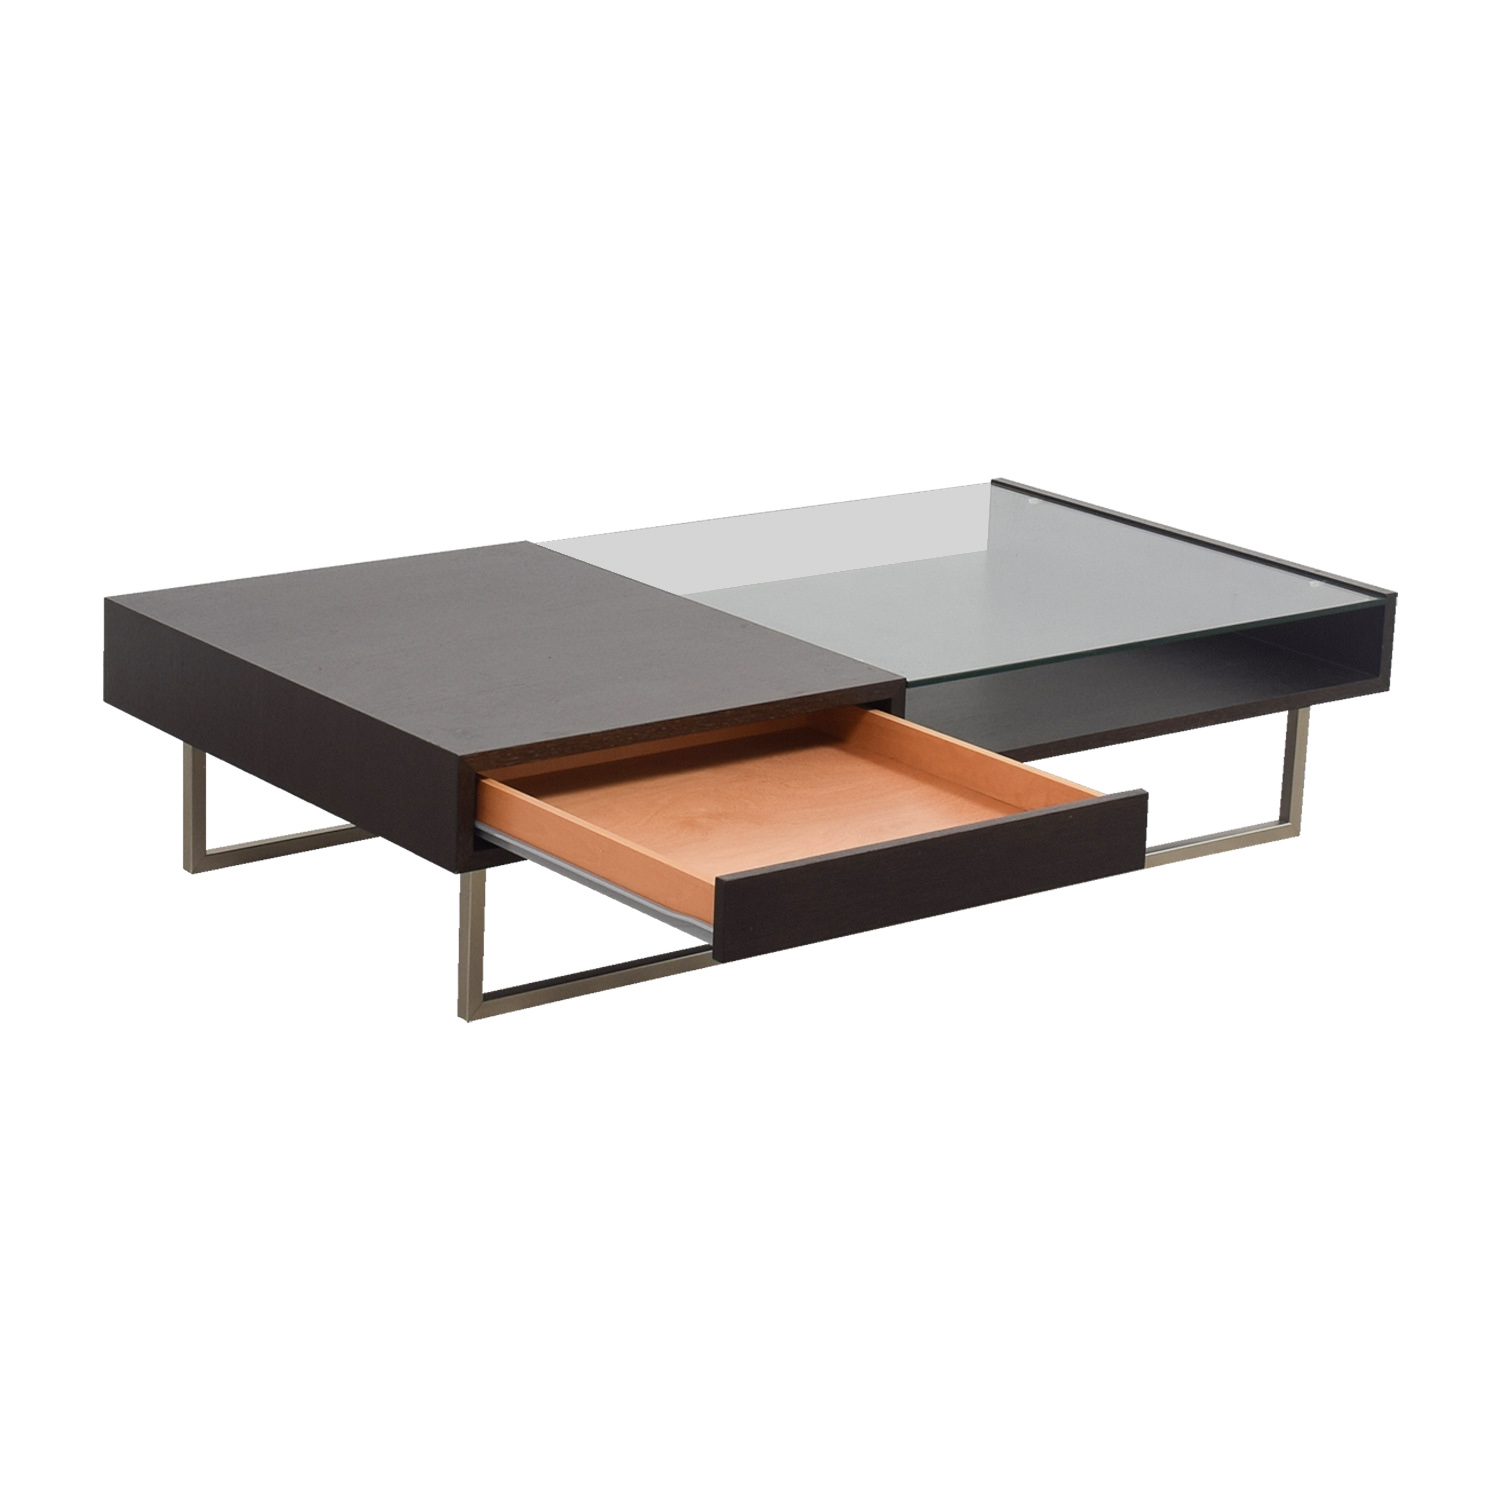 54 off natuzzi italia natuzzi walnut glass coffee table tables Used glass coffee table